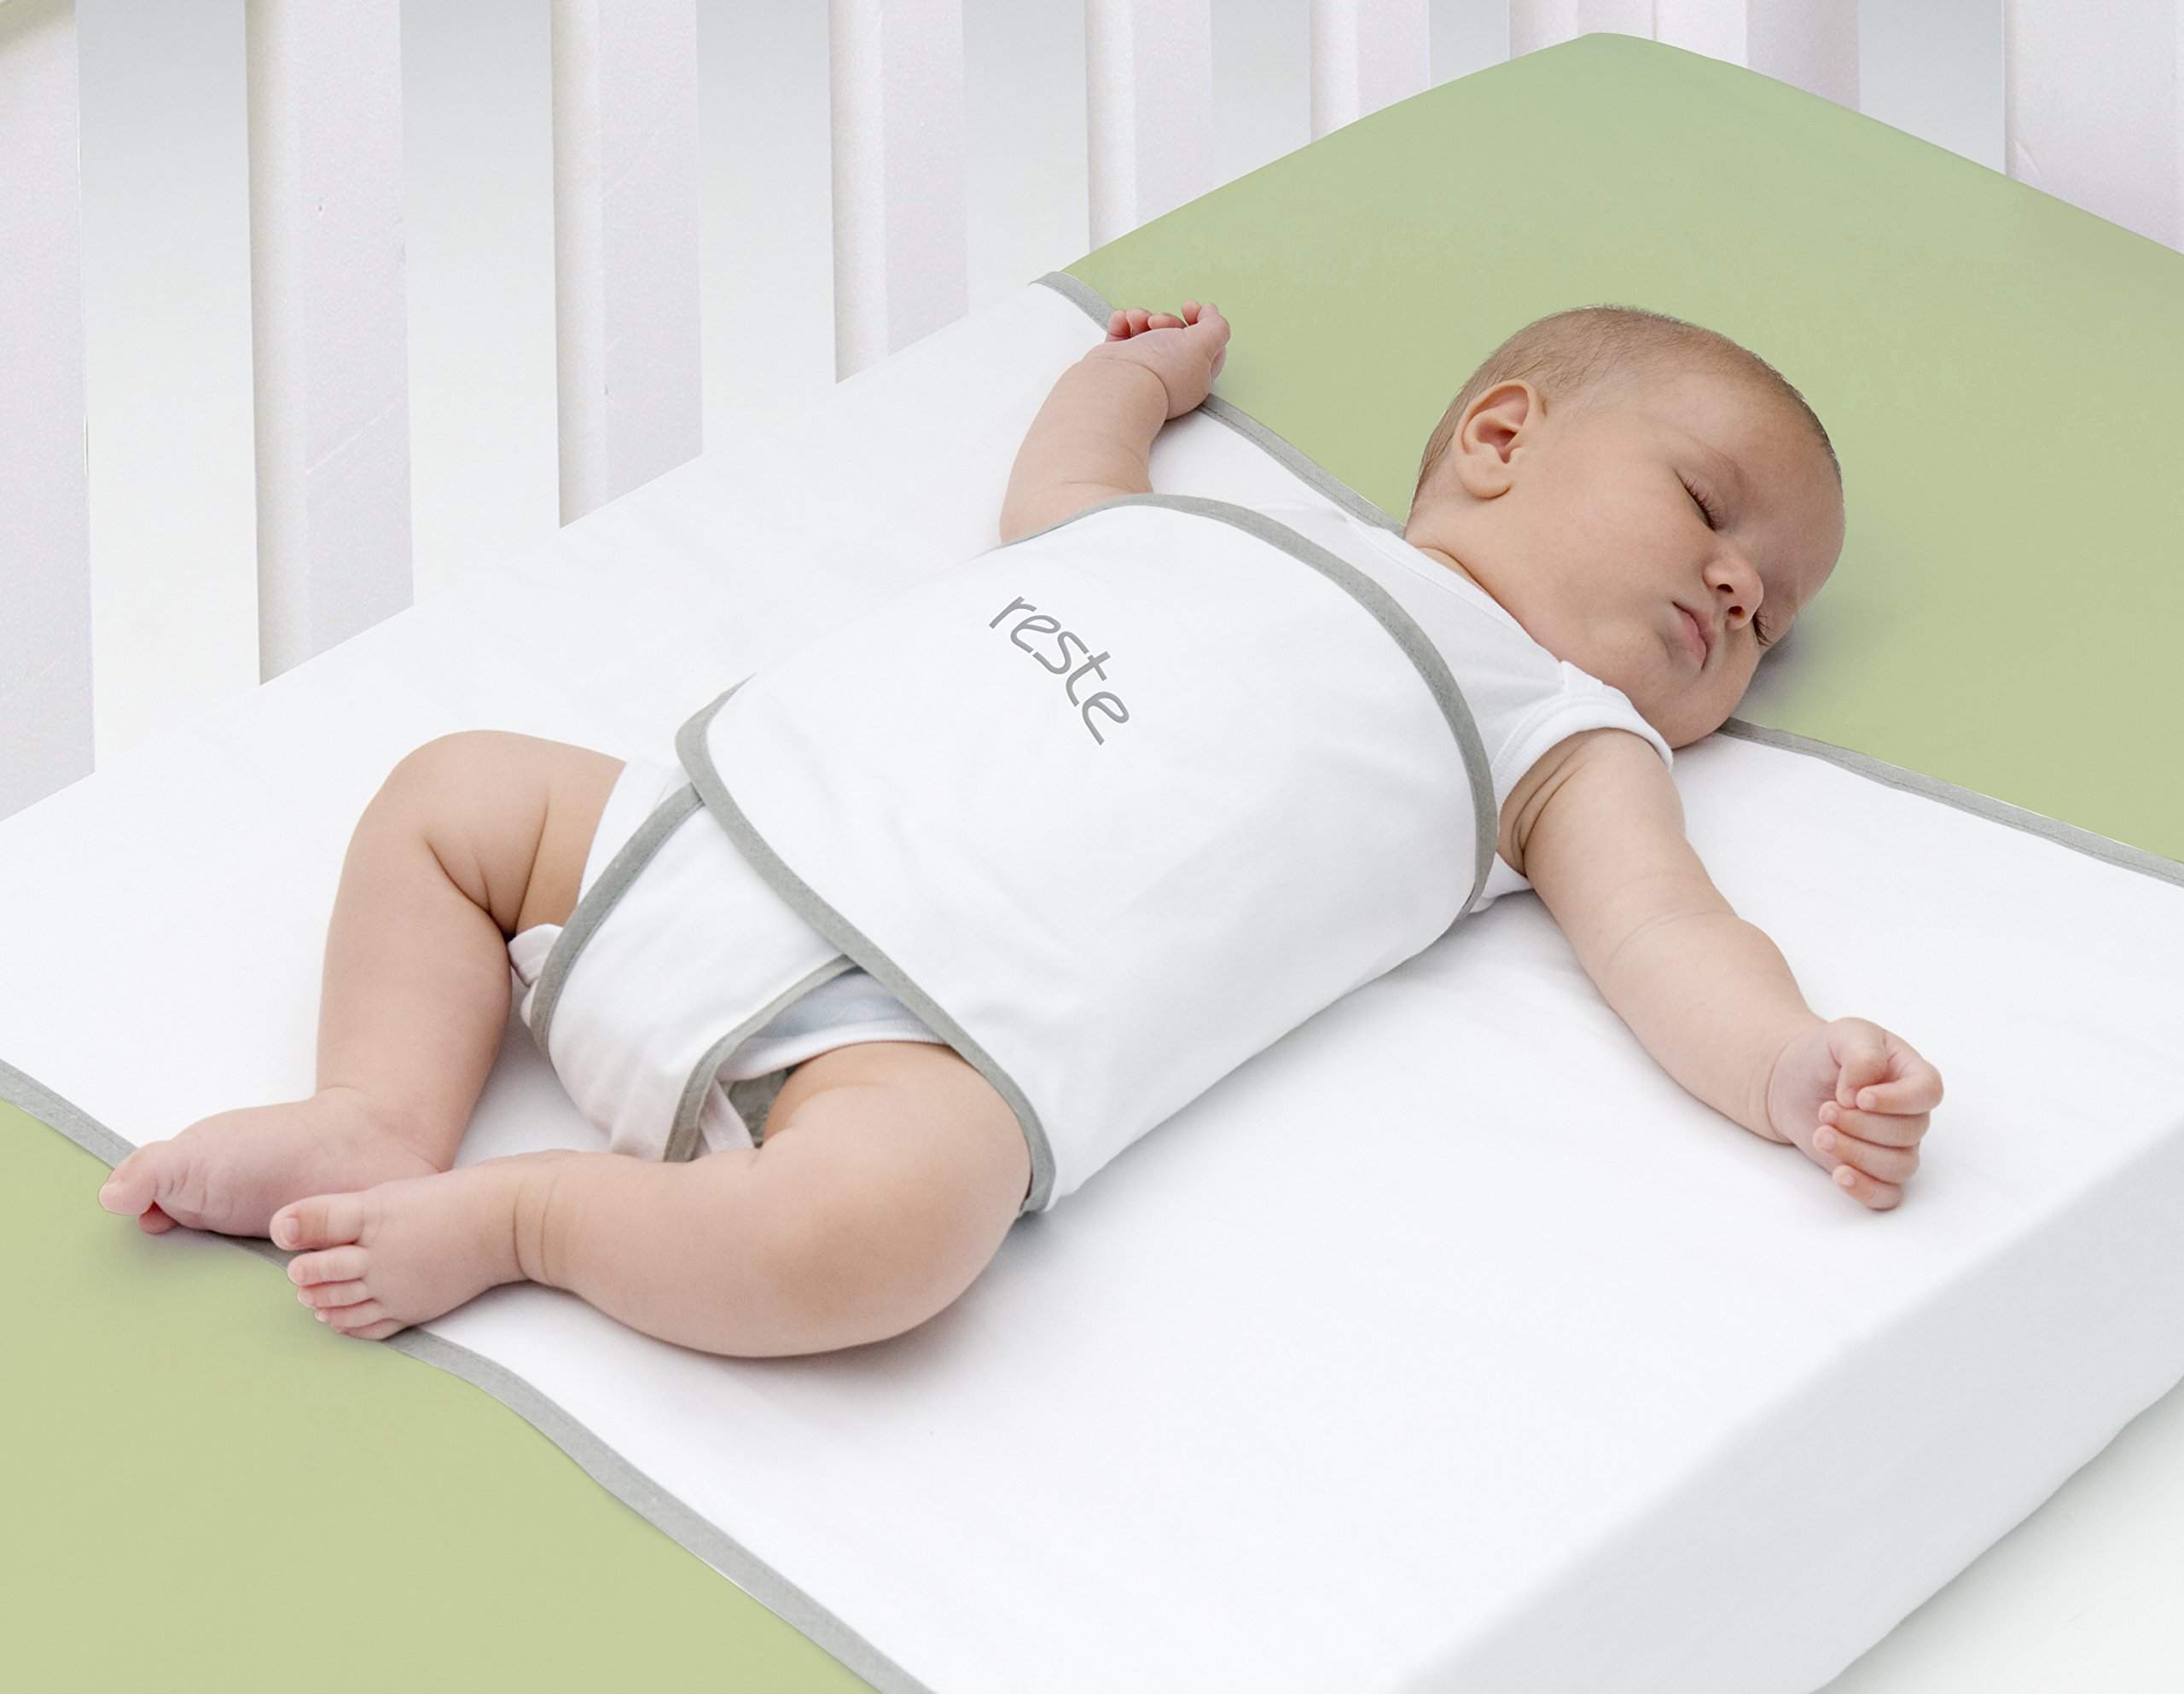 Tranquilo Safe Sleep Swaddle Blanket for Crib Safety for Newborns and Infants - Safe, Anti-Rollover Blanket in White, by Reste by RESTE